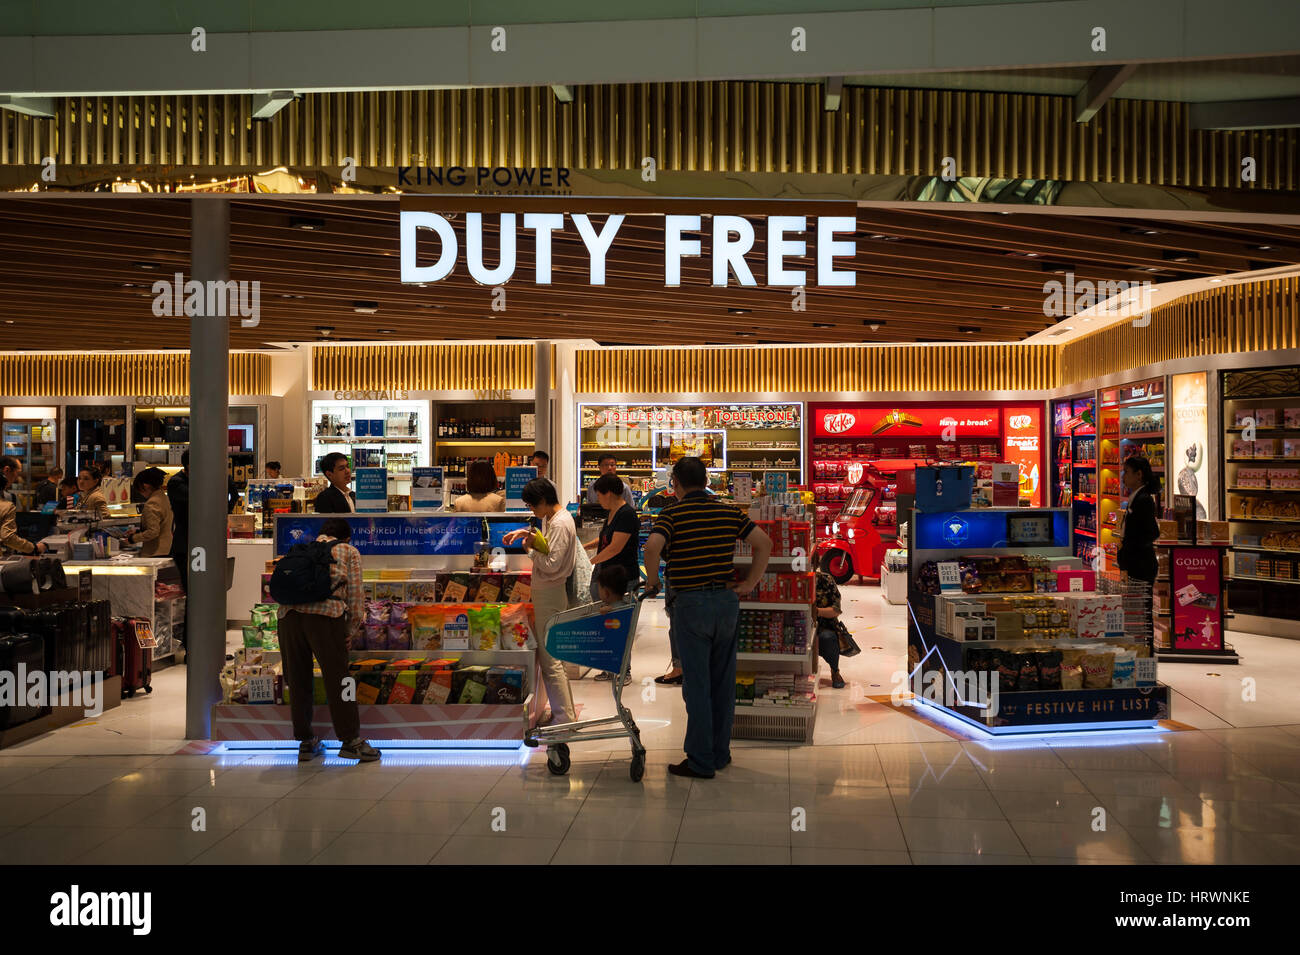 25.01.2017, Bangkok, Thailand, Asia - A duty free shop in the transit area at Bangkok's Suvarnabhumi Airport. - Stock Image